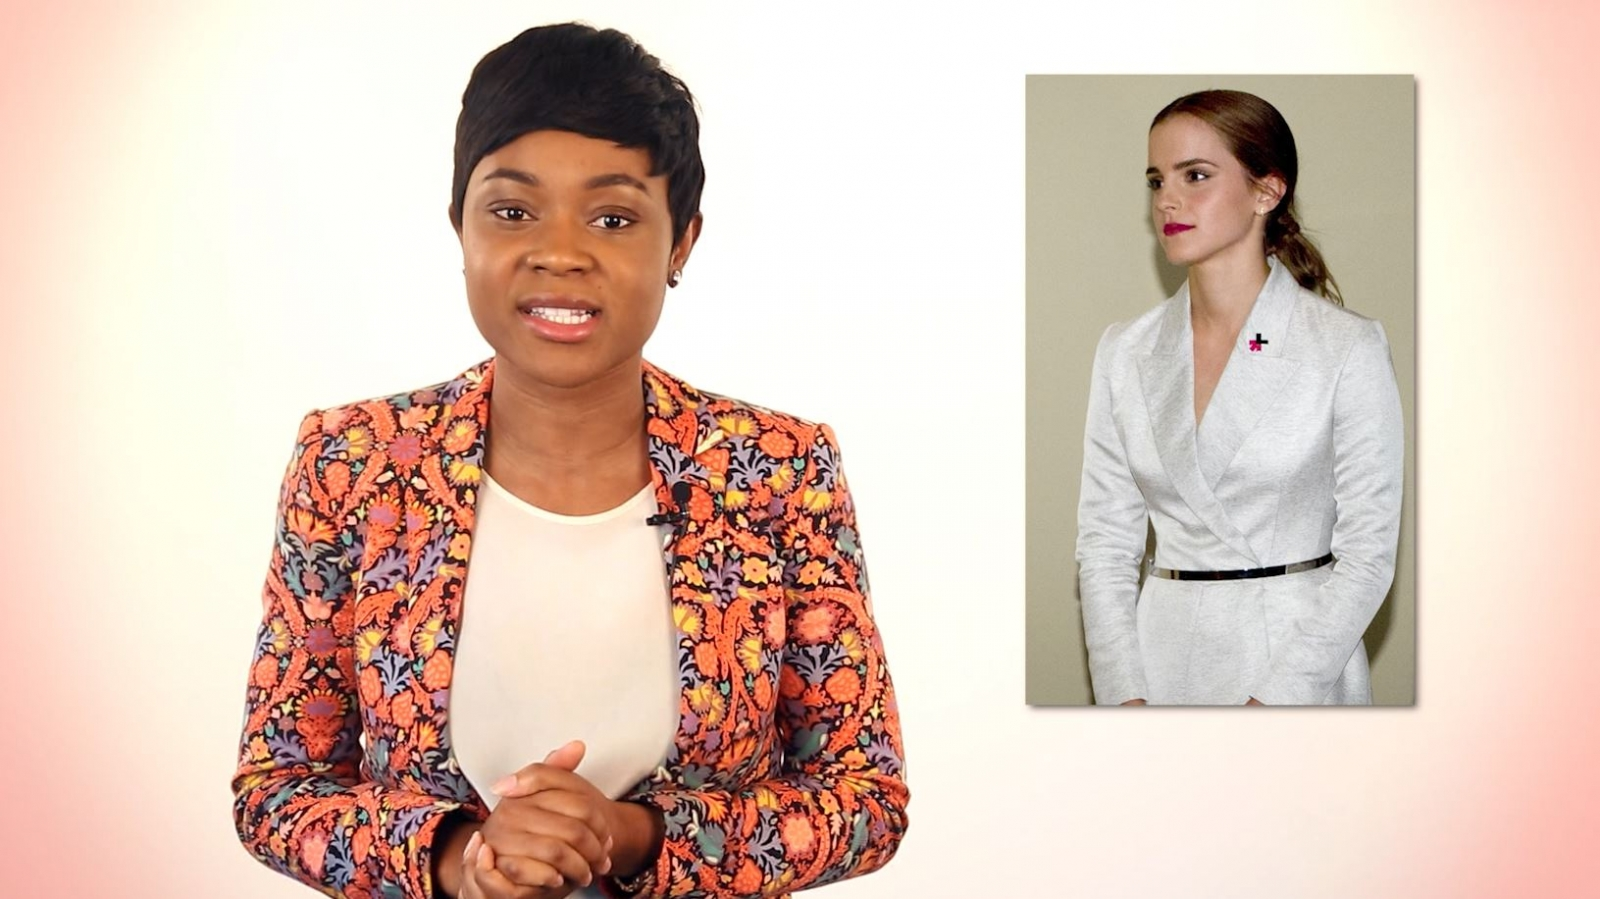 A-List Insider: Emma Watson's UN Speech, Rita Ora Joins The Voice